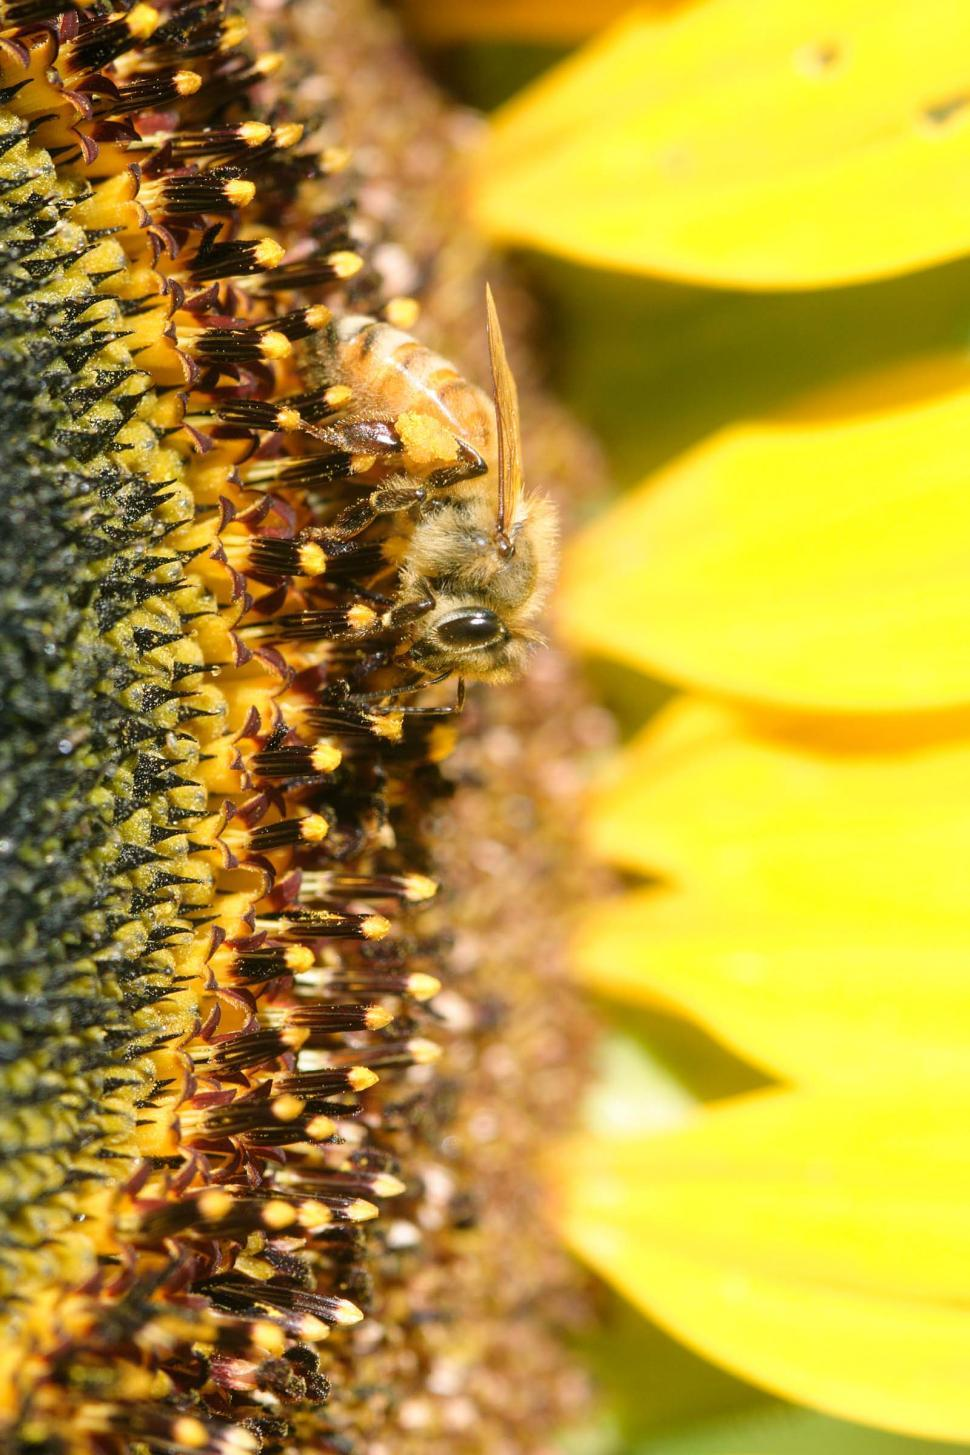 Download Free Stock HD Photo of Bees on a sunflower, close up Online